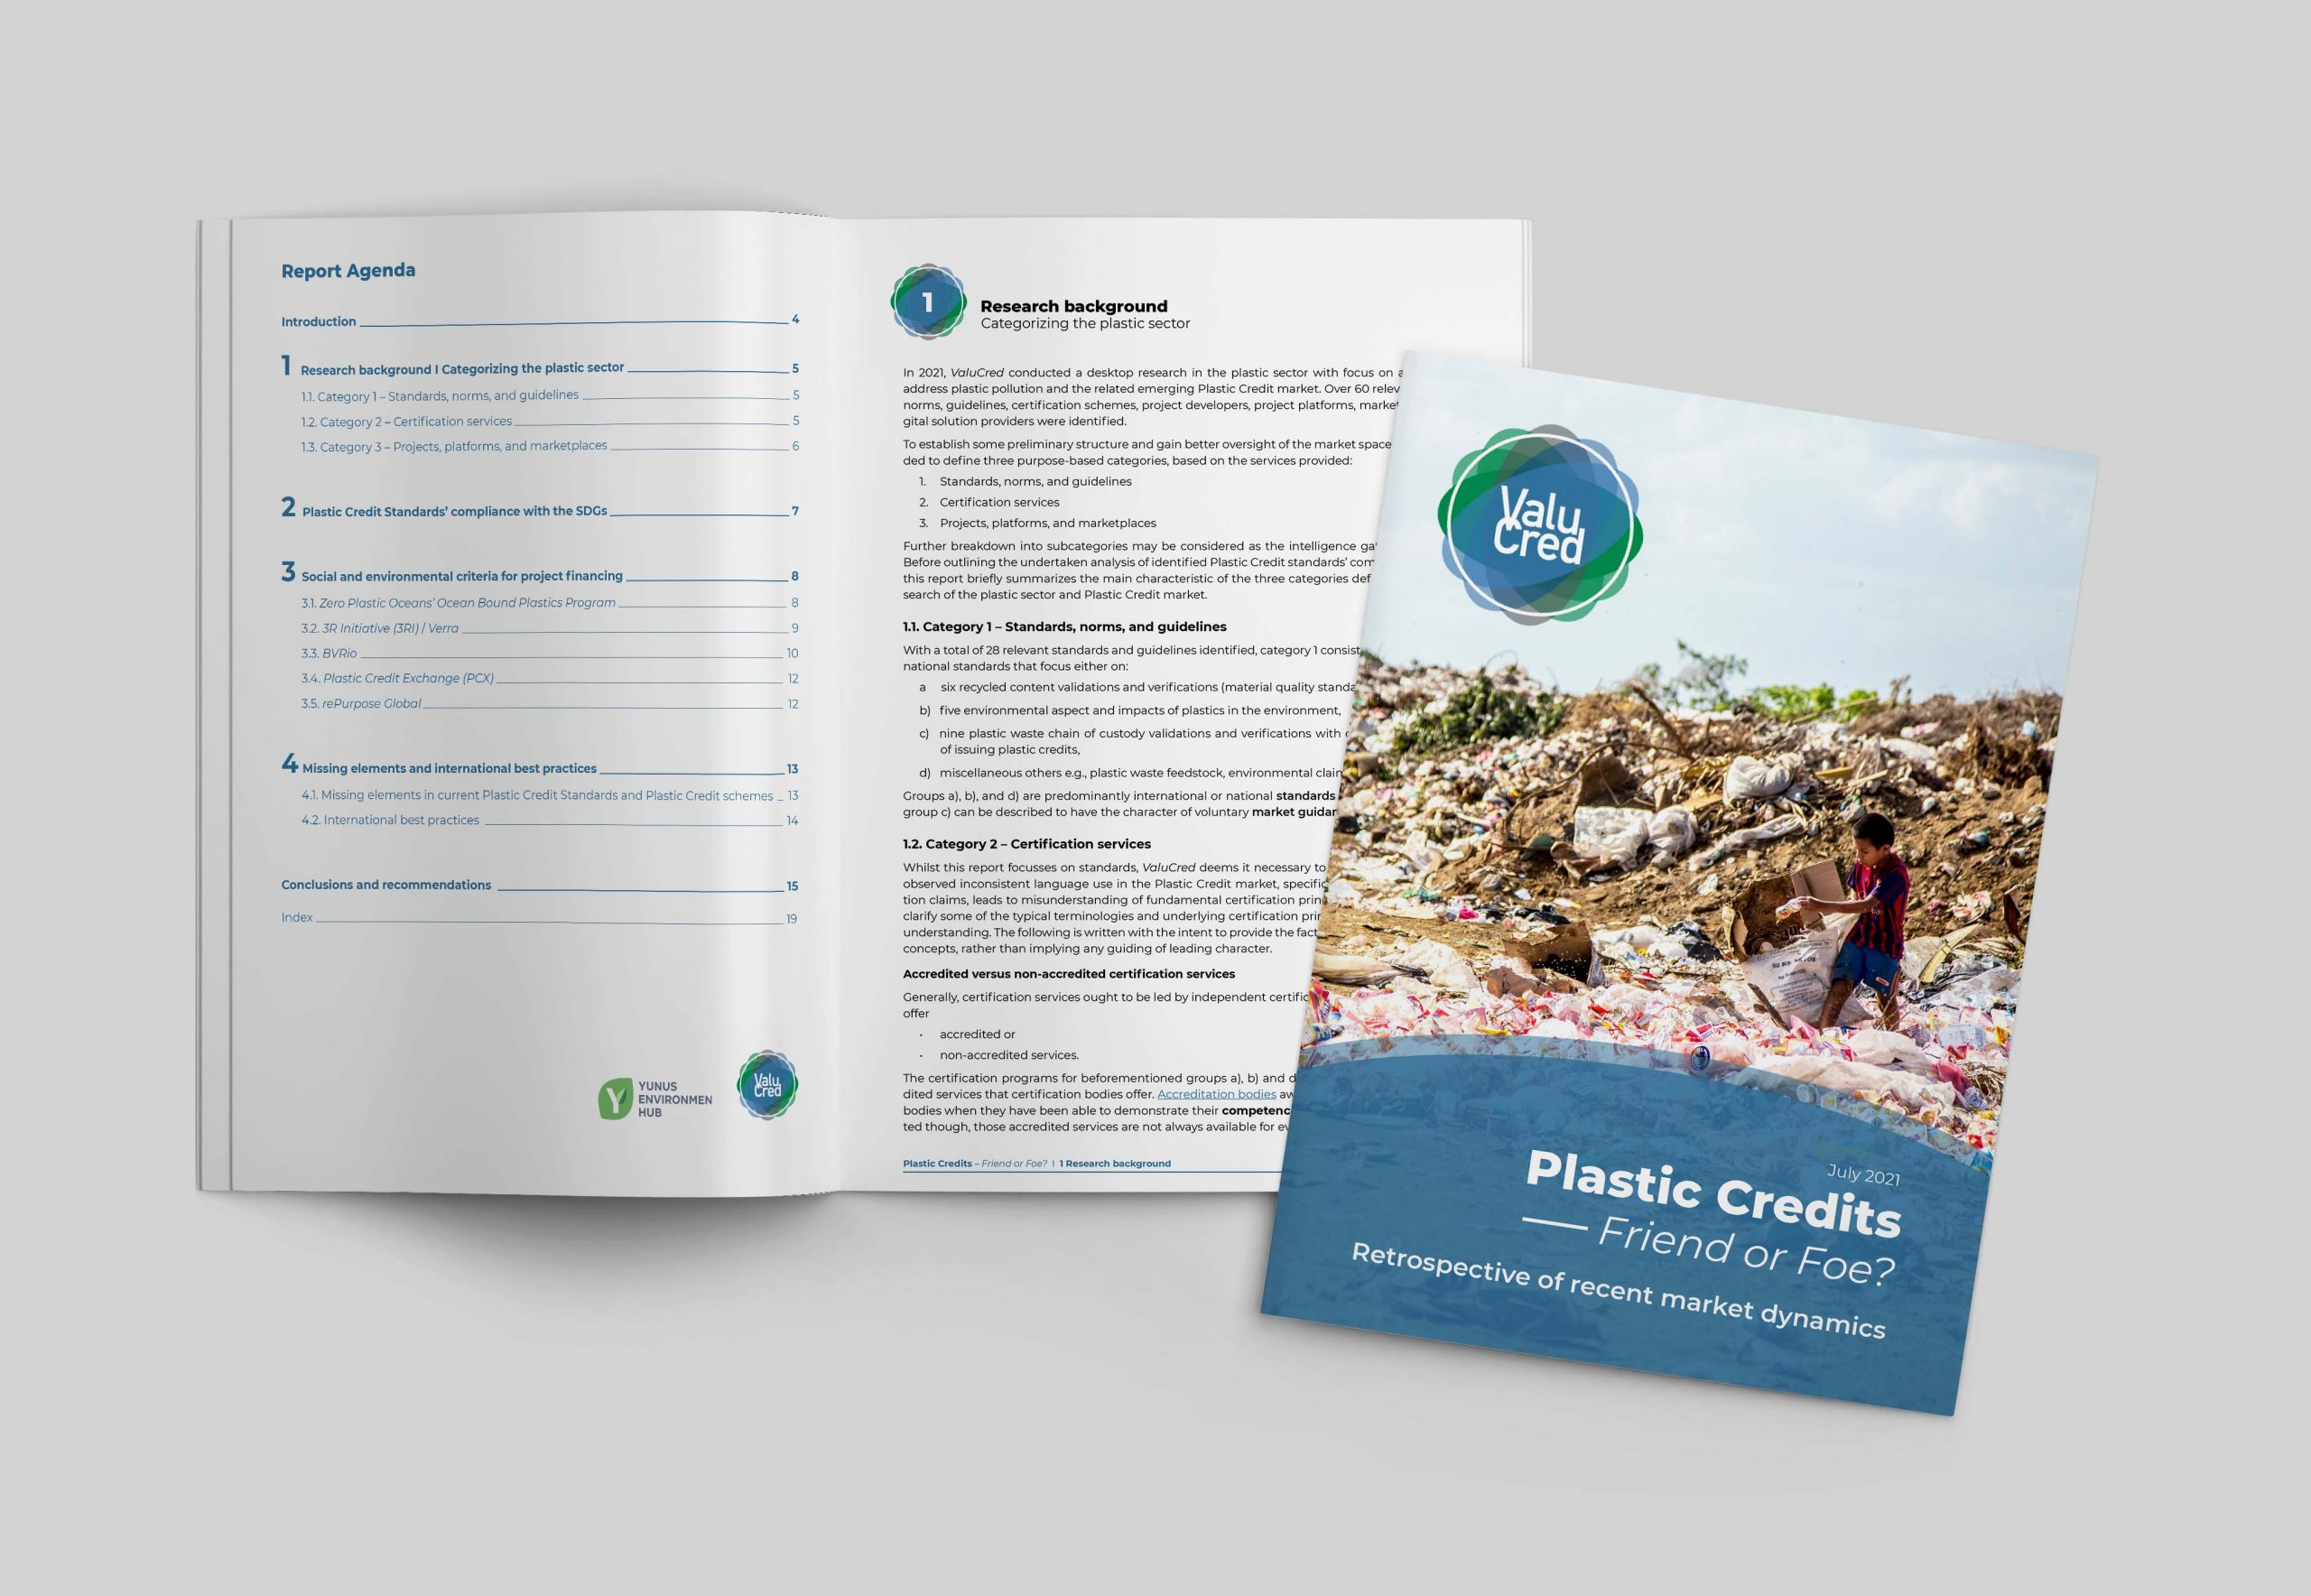 ValuCred report on Plastic Credits published